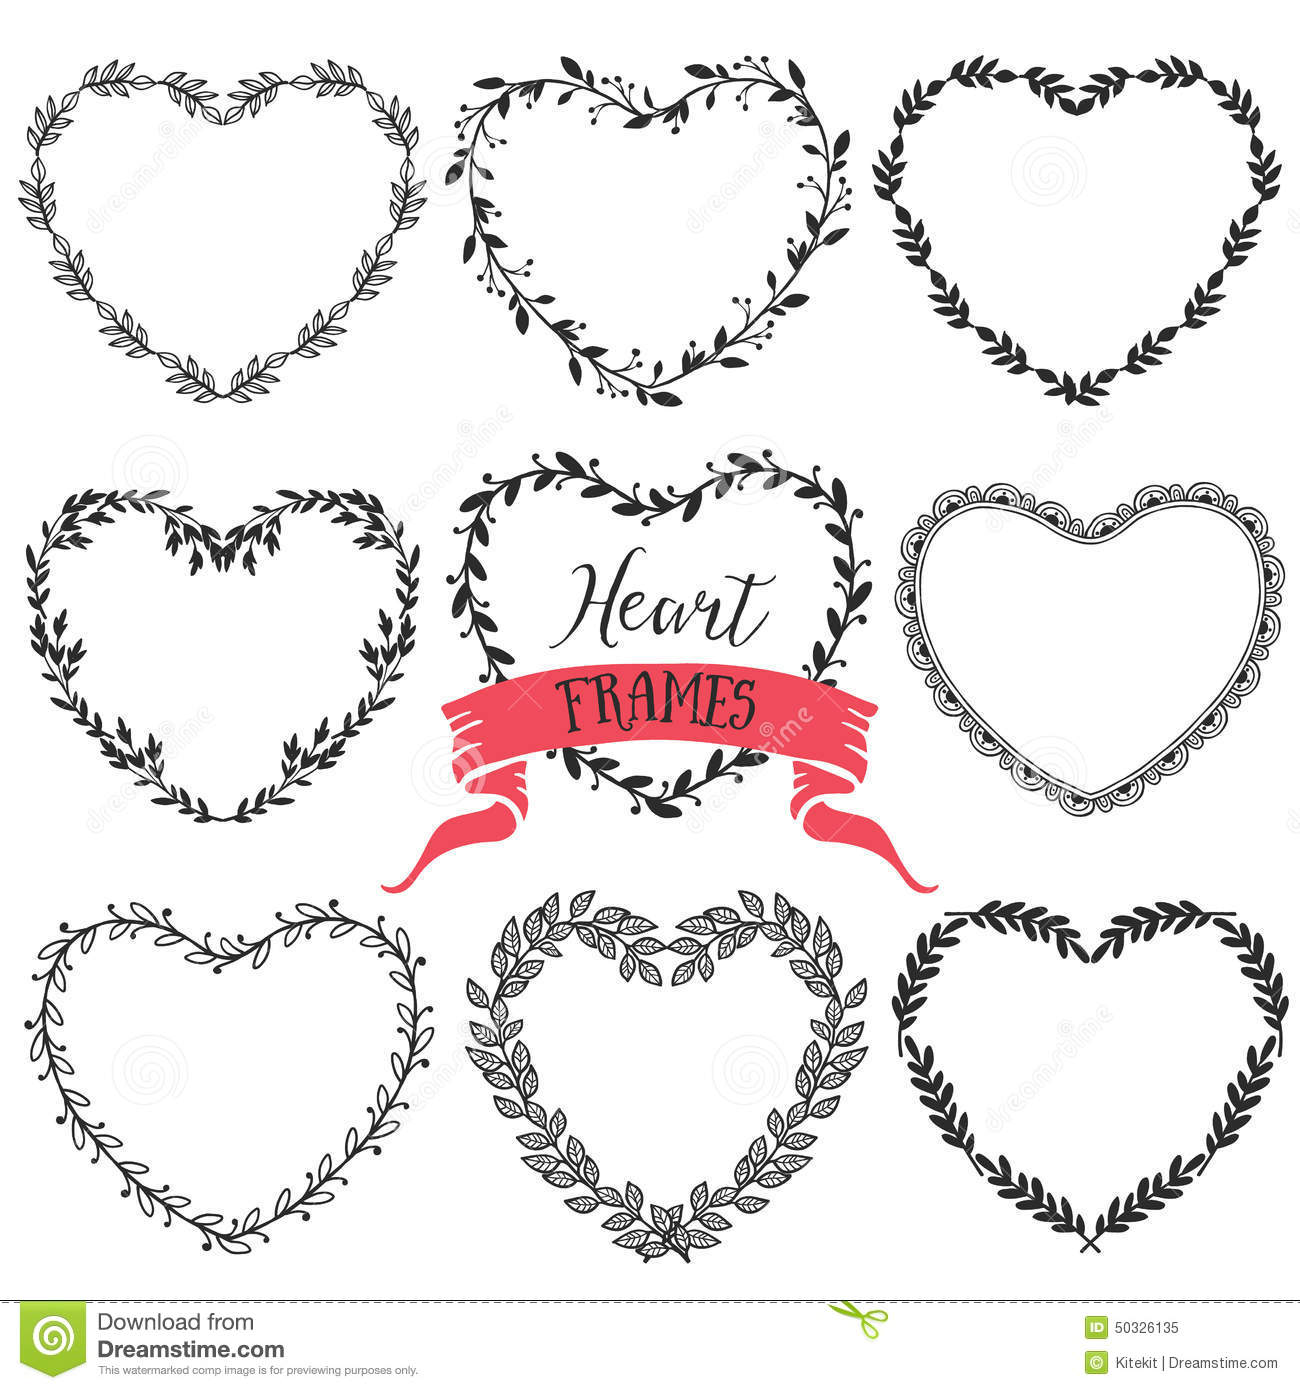 Hand Drawn Rustic Vintage Heart Wreaths Floral Vector